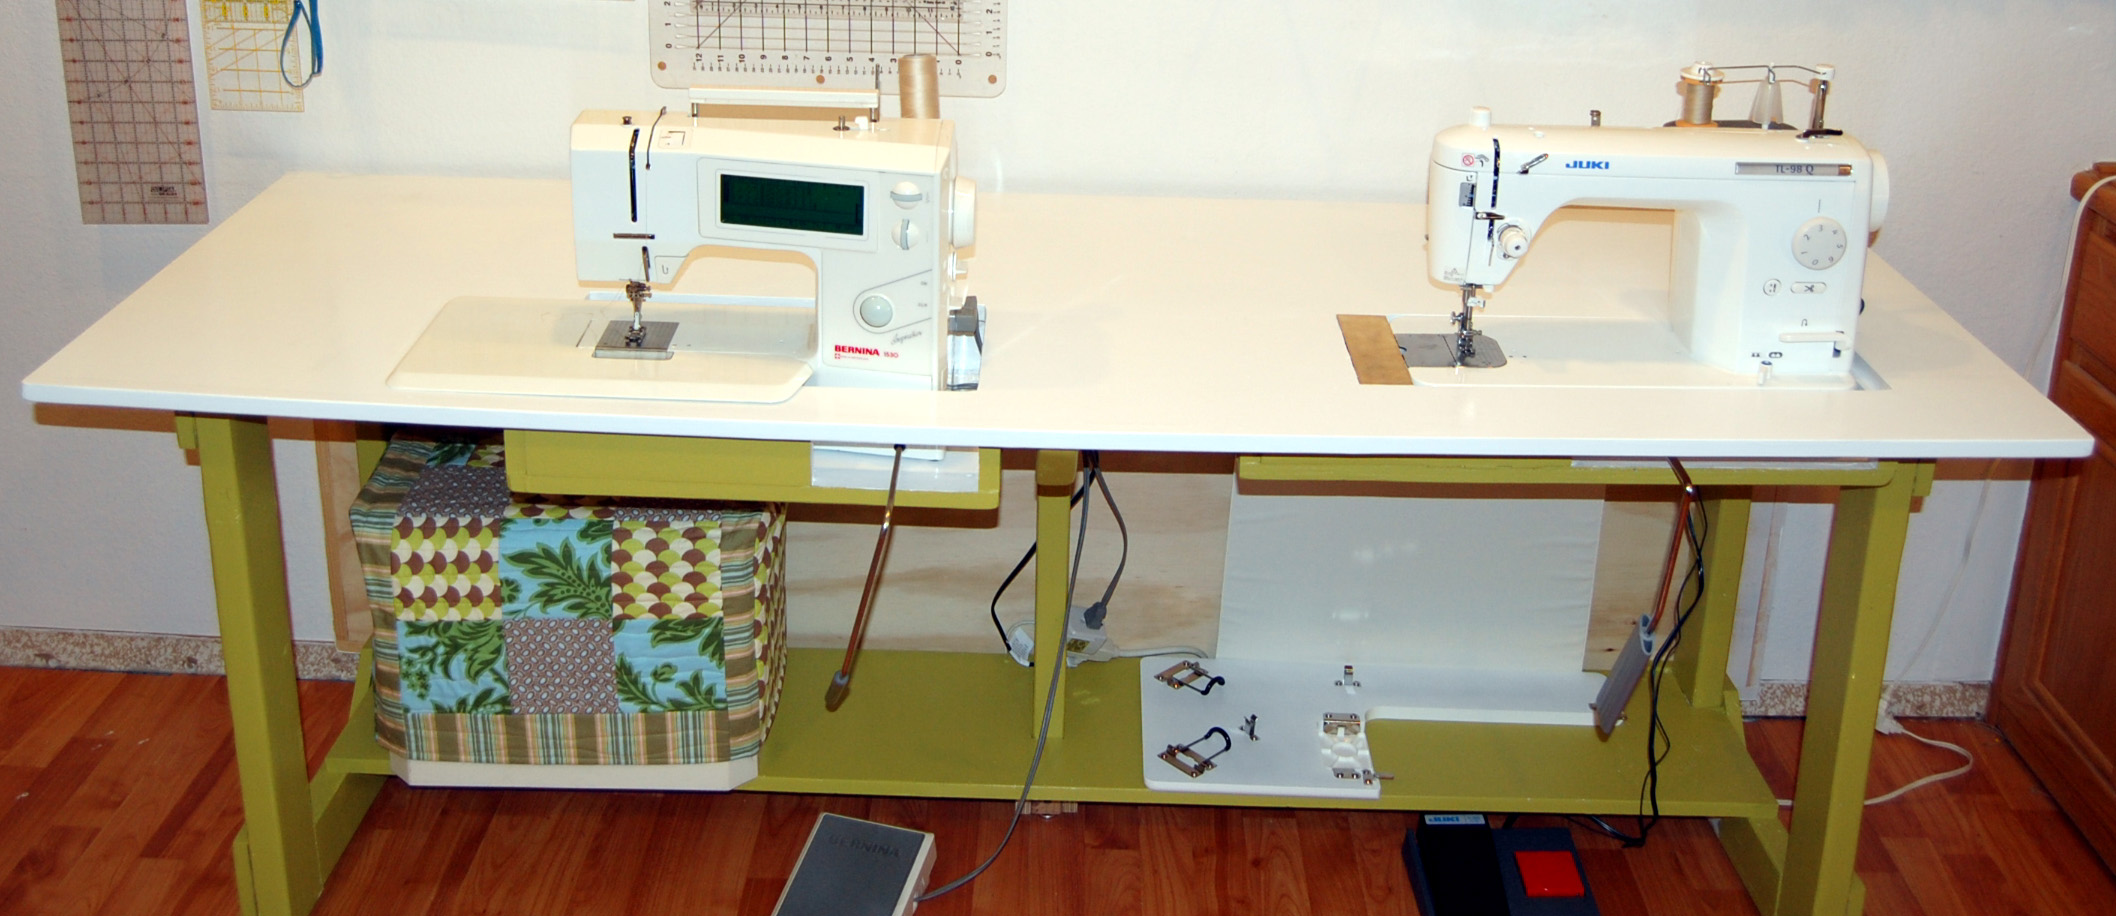 extension diy table machine sewing we sew and img quilt quilting craft